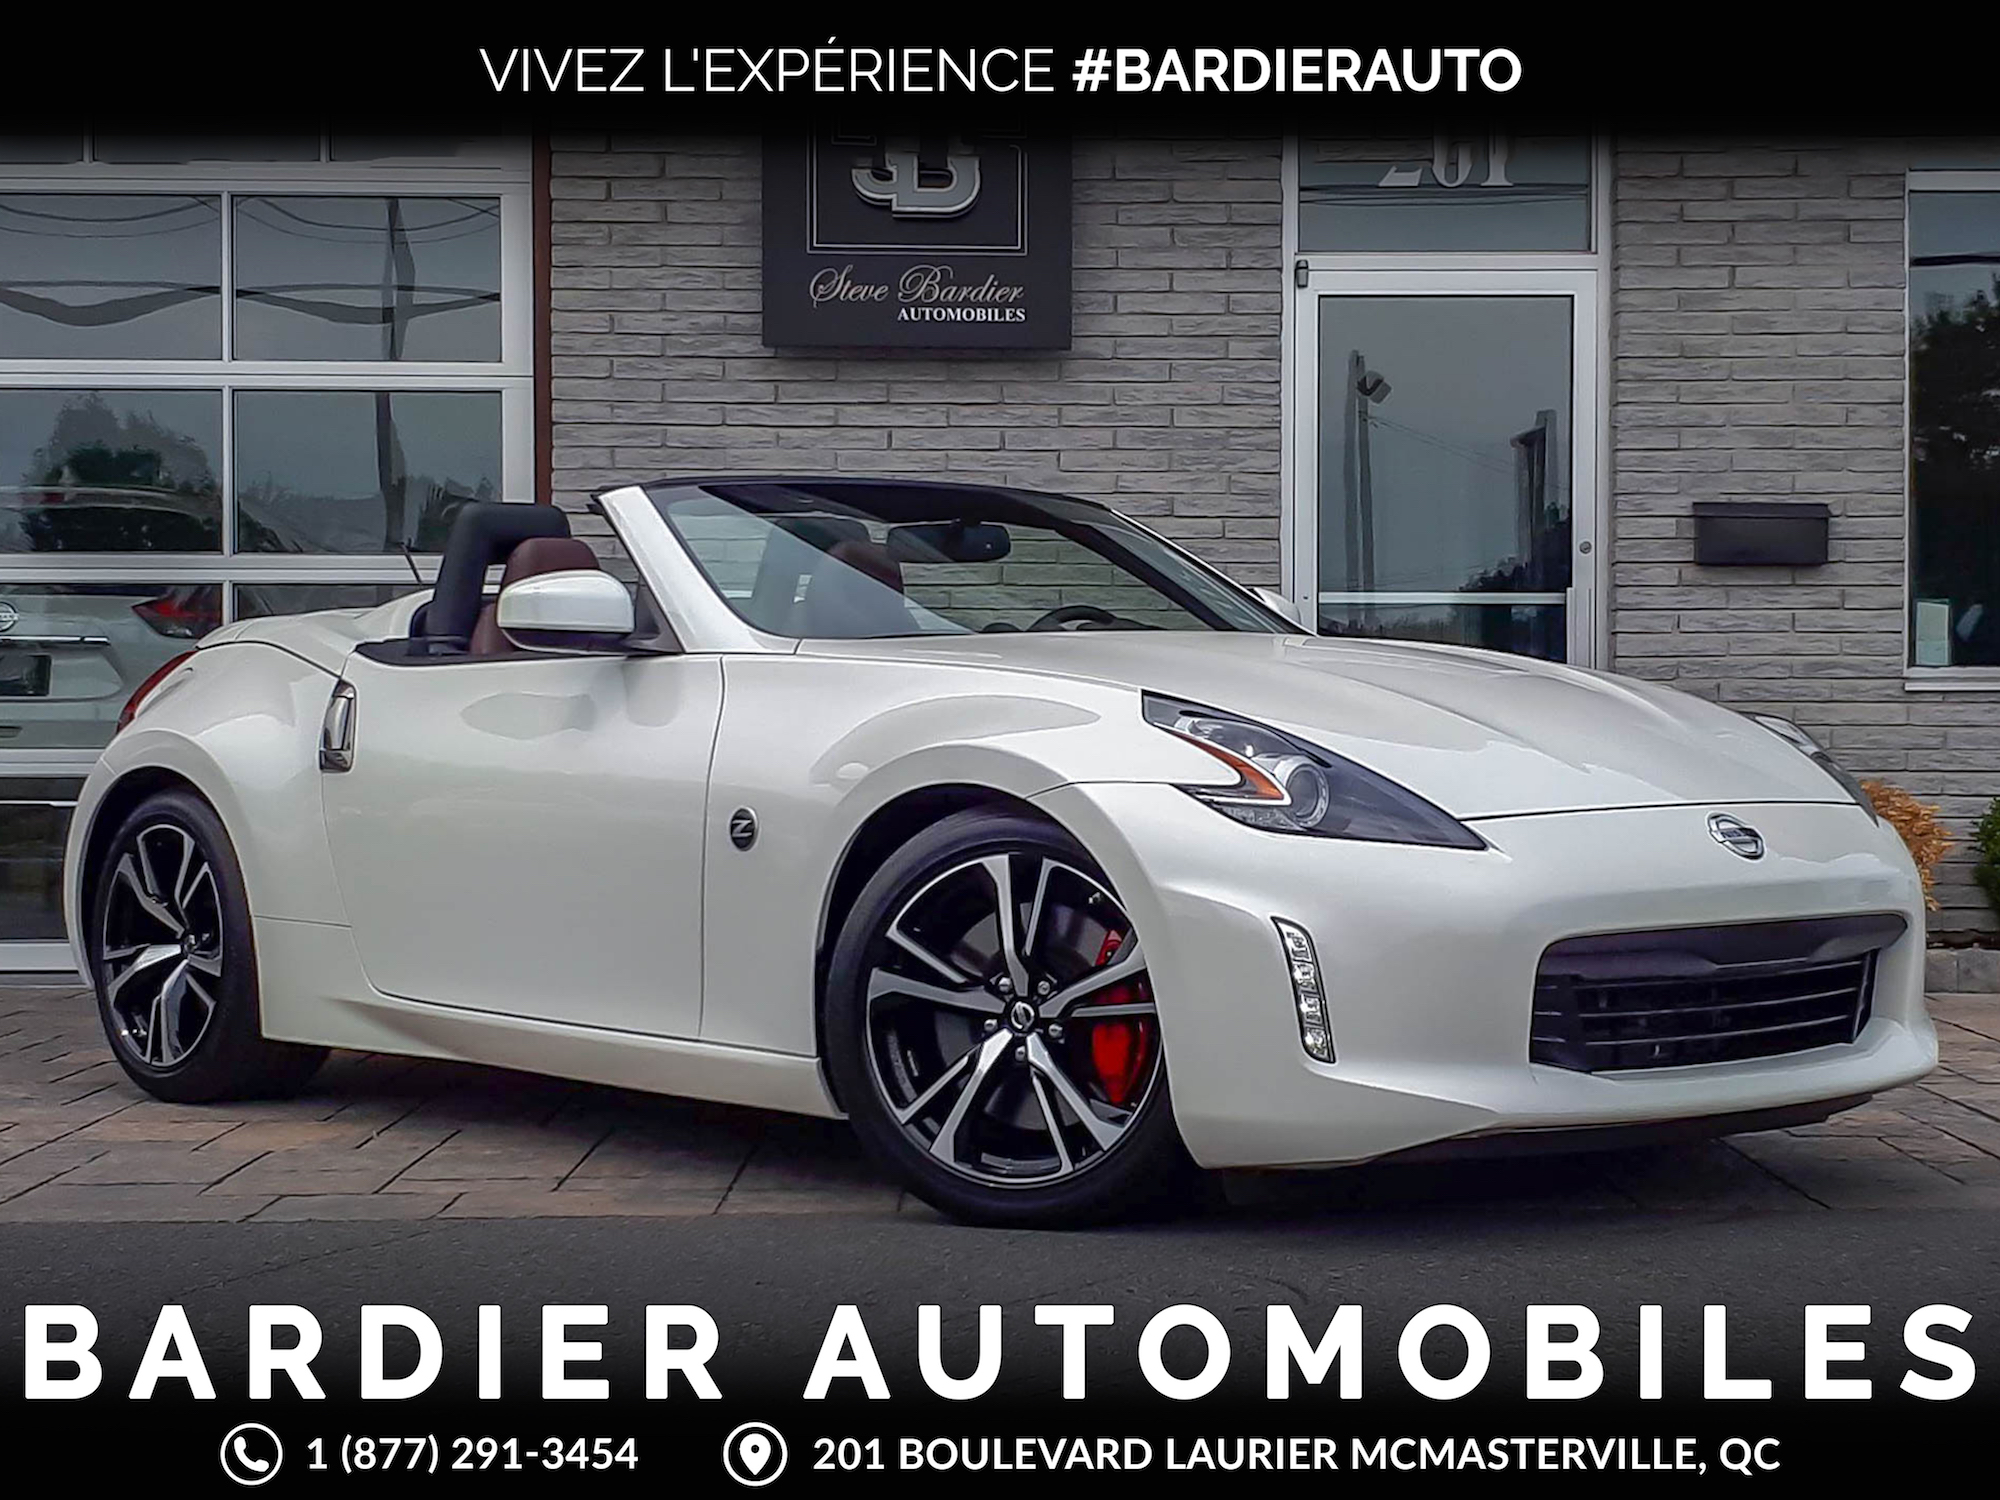 2018 nissan 370z roadster convertible 625 km bardier automobiles inc. Black Bedroom Furniture Sets. Home Design Ideas